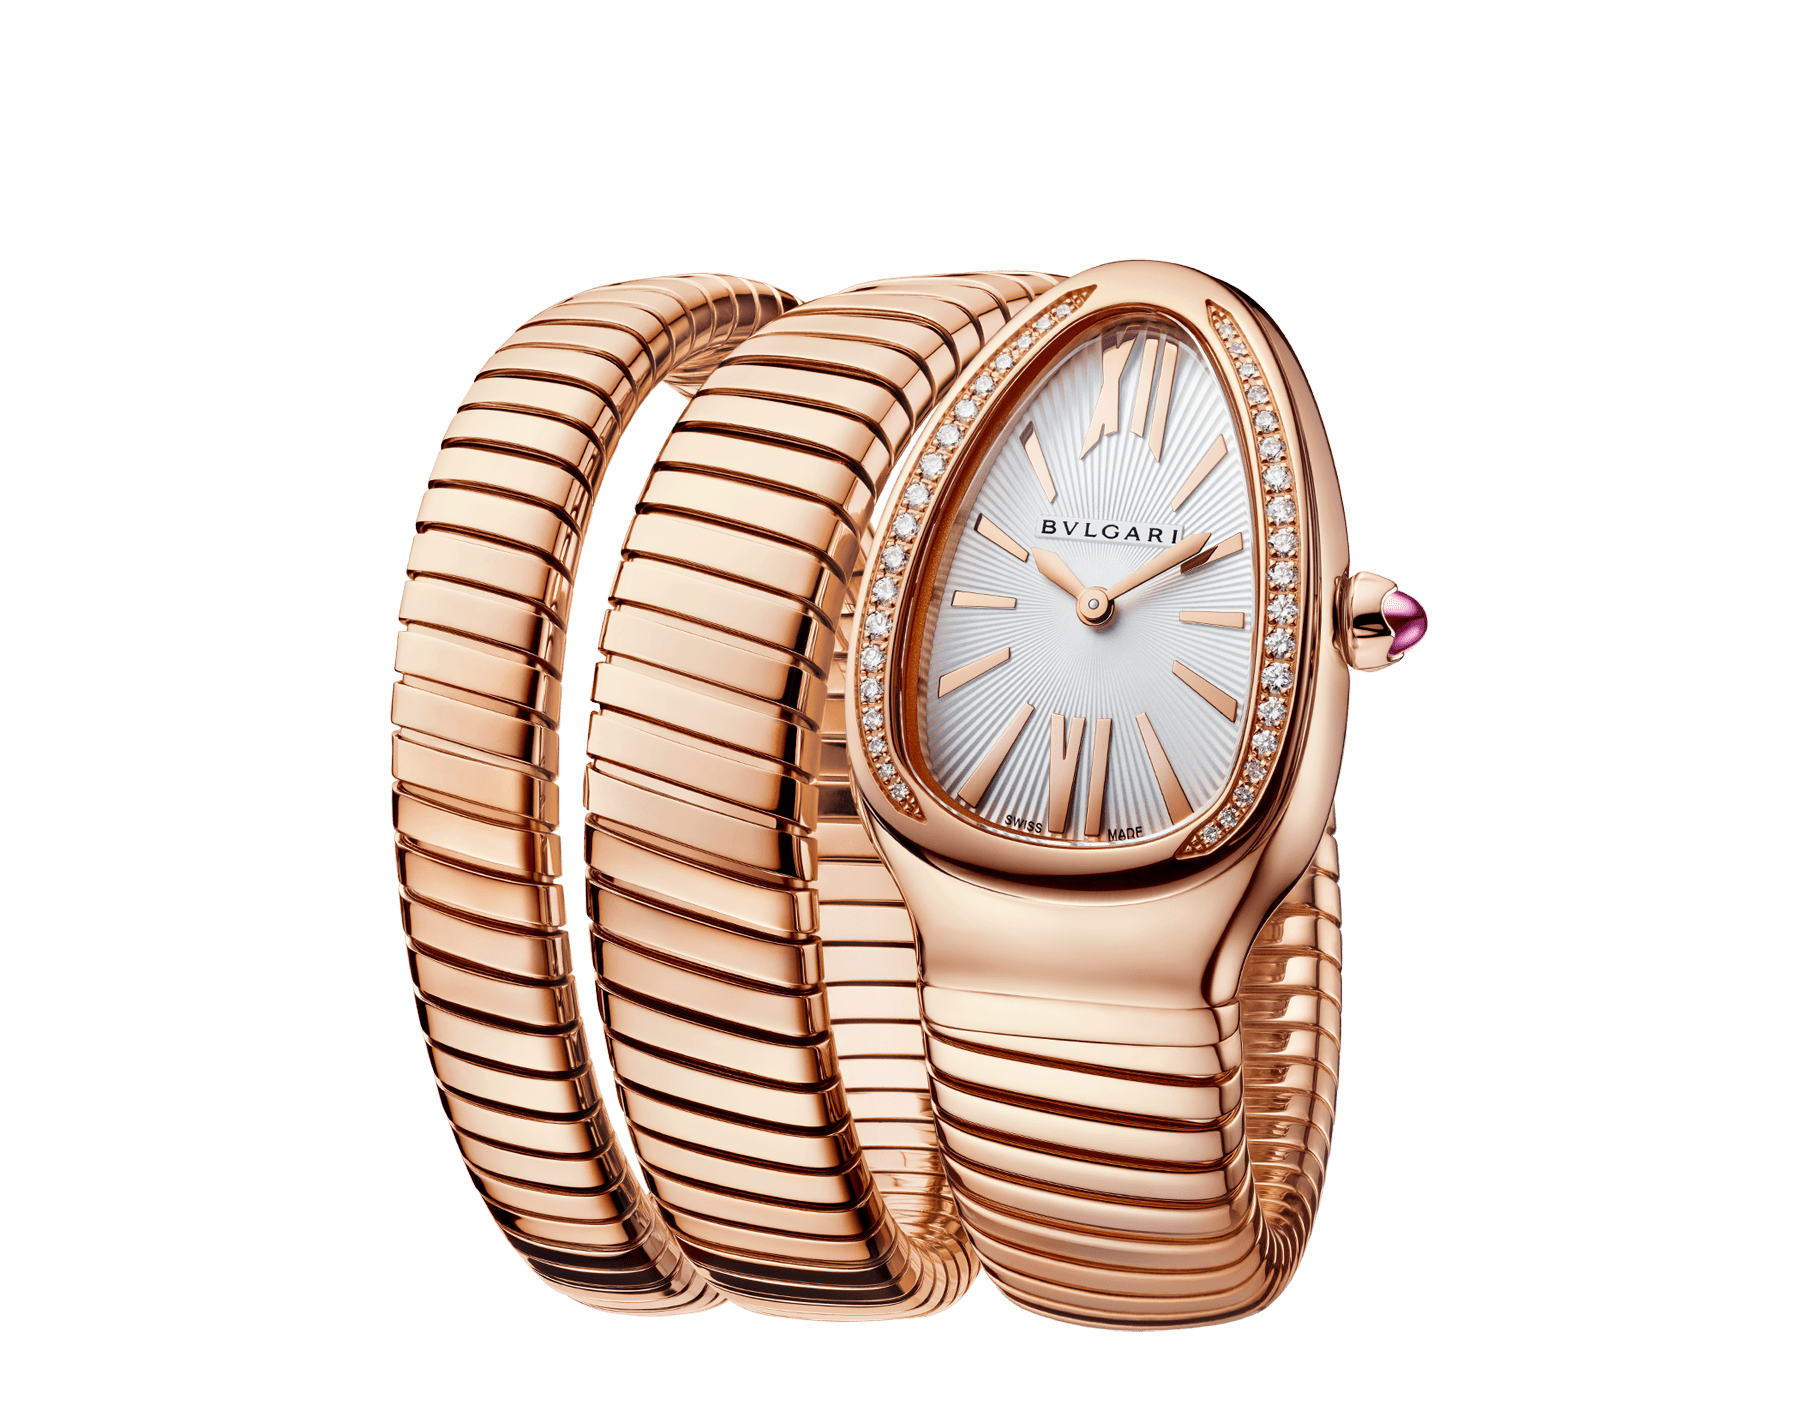 Serpenti Tubogas double spiral watch with 18 kt rose gold case set with brilliant-cut diamonds, silver opaline dial and 18 kt rose gold bracelet 103002 image 2